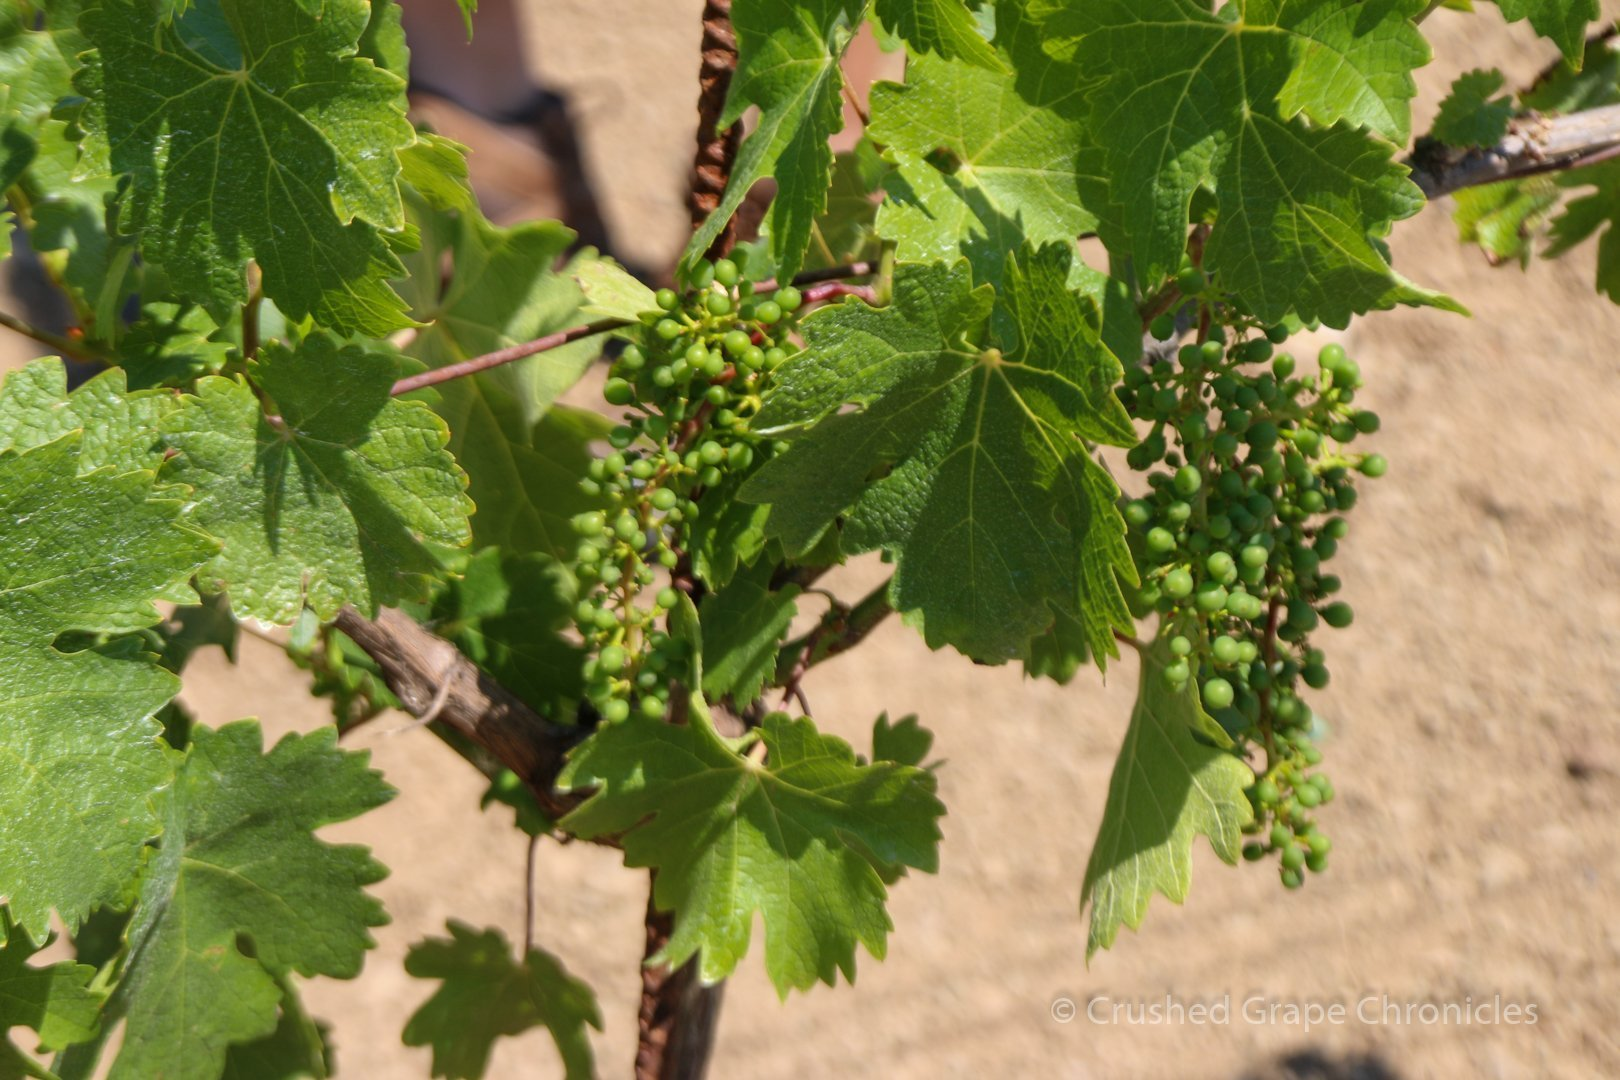 Grapes at Girardet